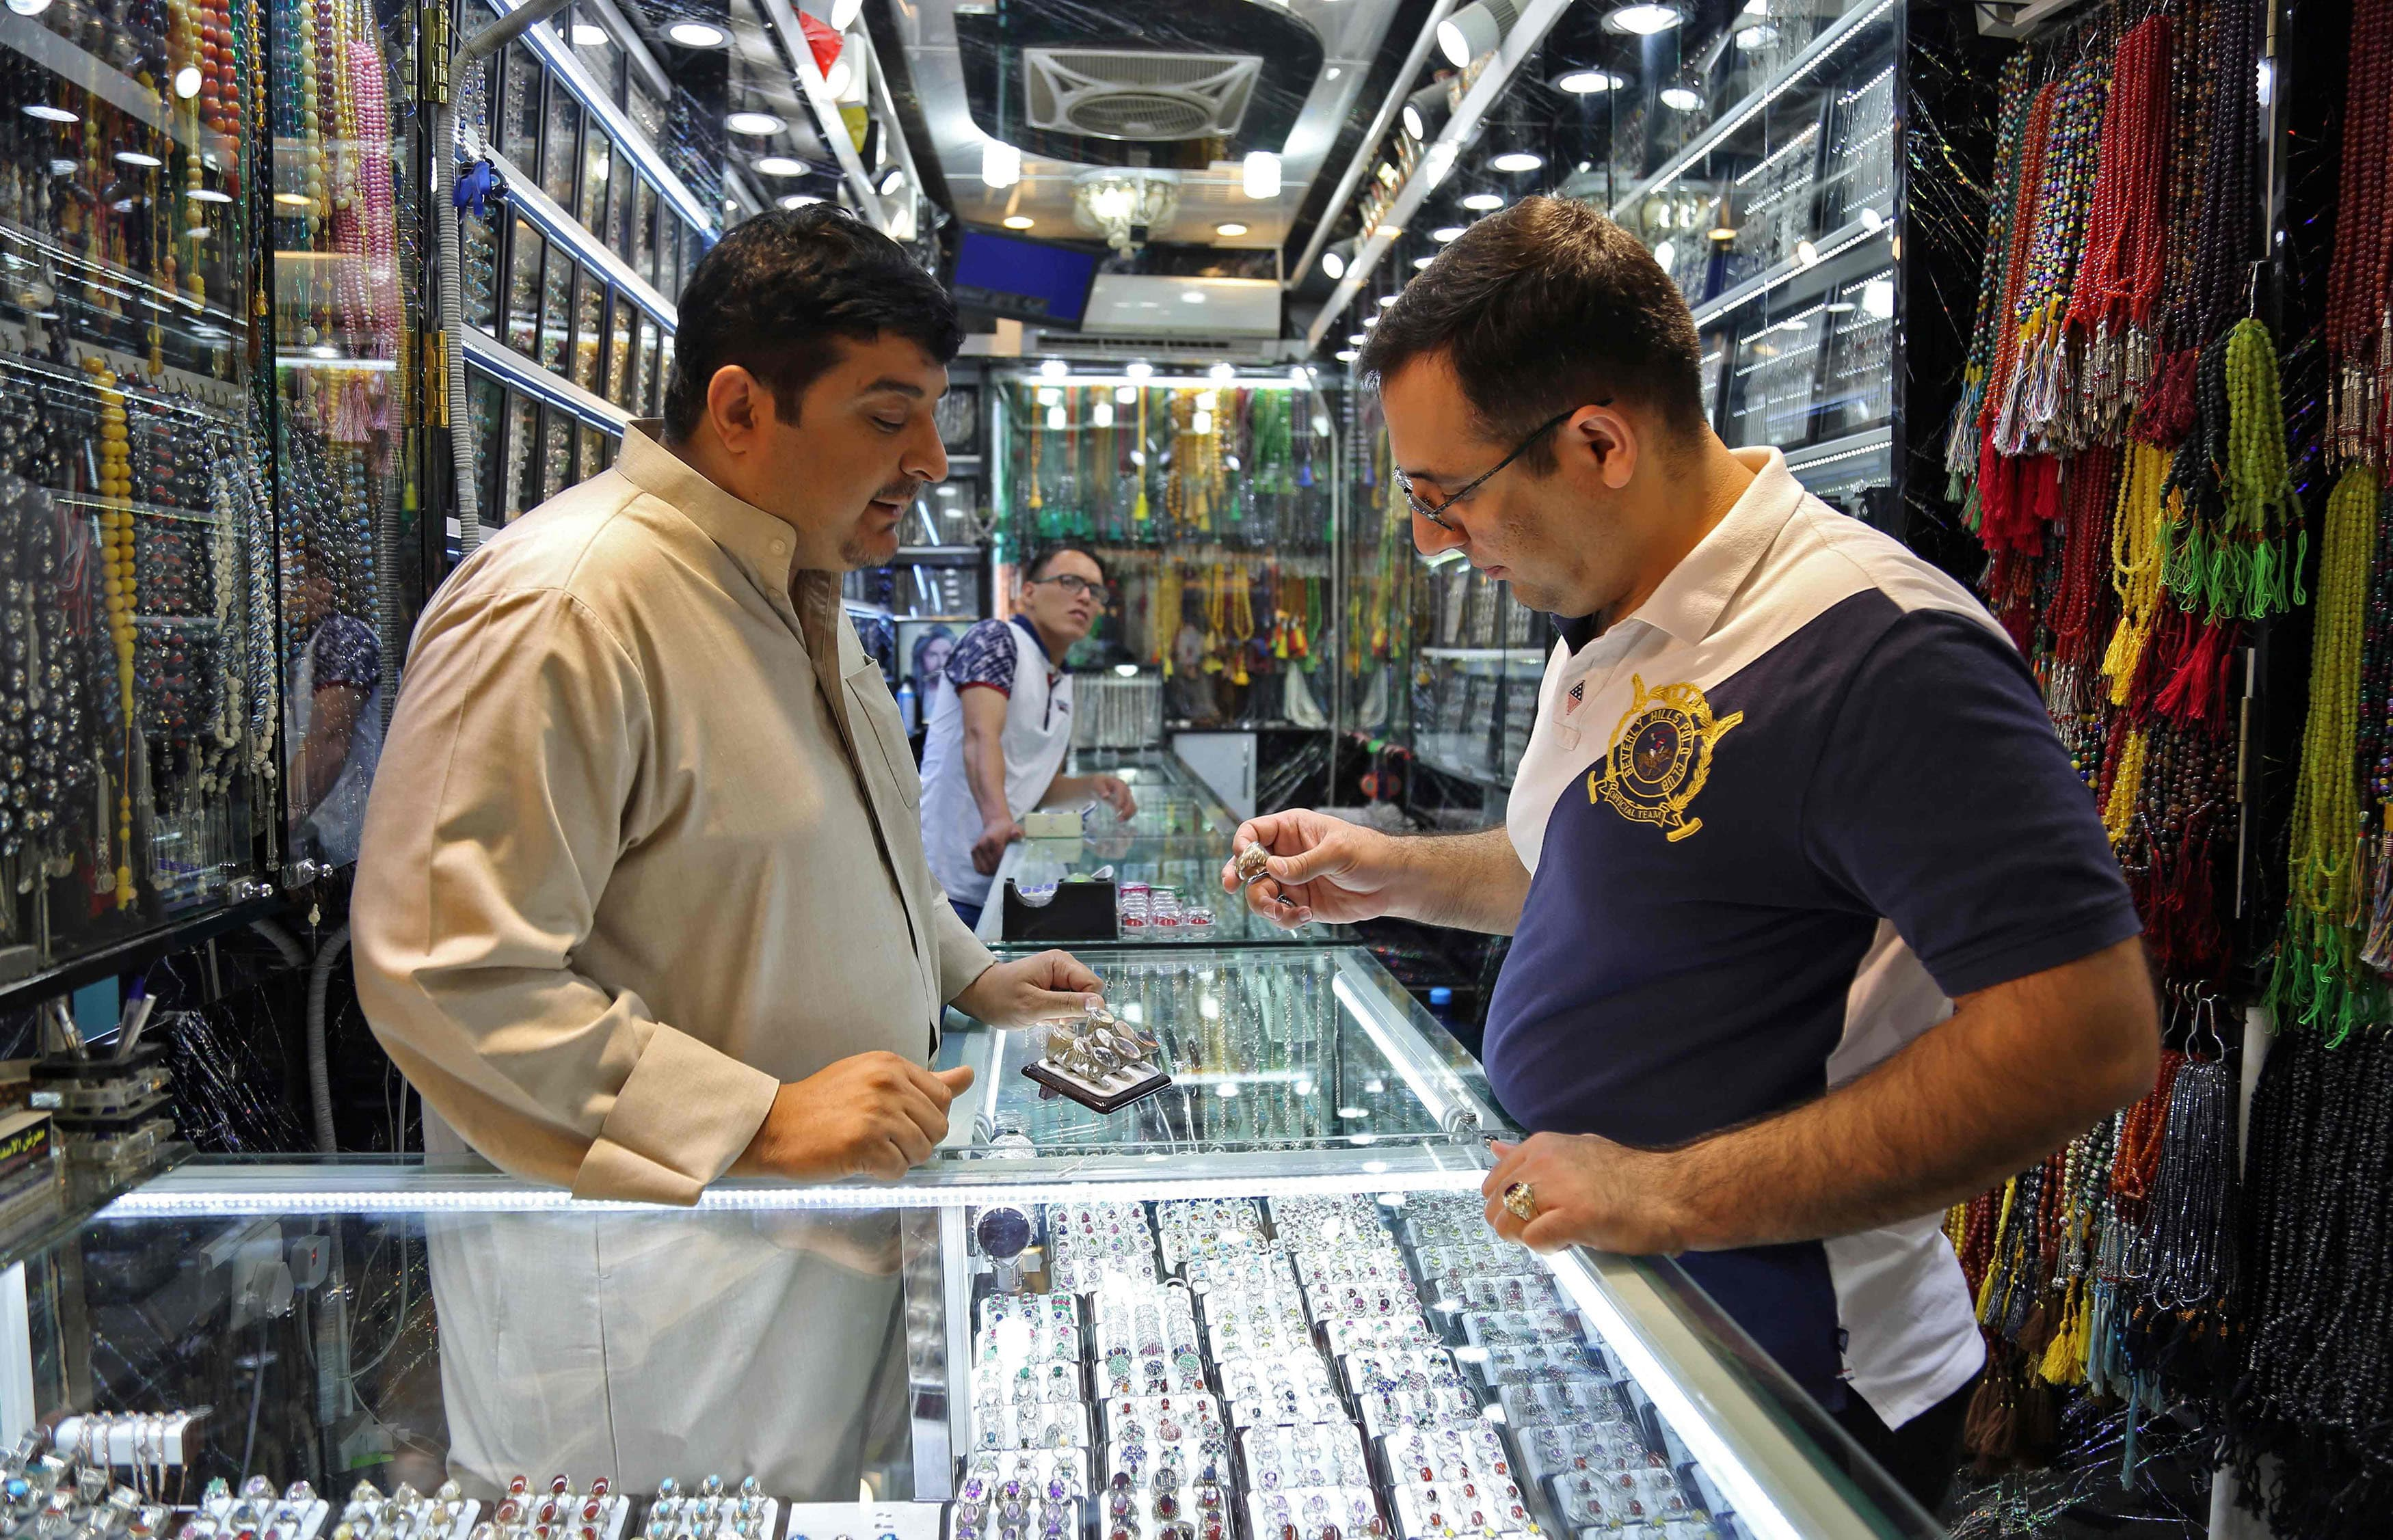 A man browses for rings at a jeweller's in the main market of Iraq's holy city of Najaf on September 13, 2017. Strategically located facing the golden gate of the mausoleum, the Shiite religious calendar controls the life of the market's gemstone traders, for whom boom times on major religious ceremonies are a boon as the increase in demand sends the most prized rings into the thousands of dollars bracket. / AFP PHOTO / Haidar HAMDANI — AFP or licensors